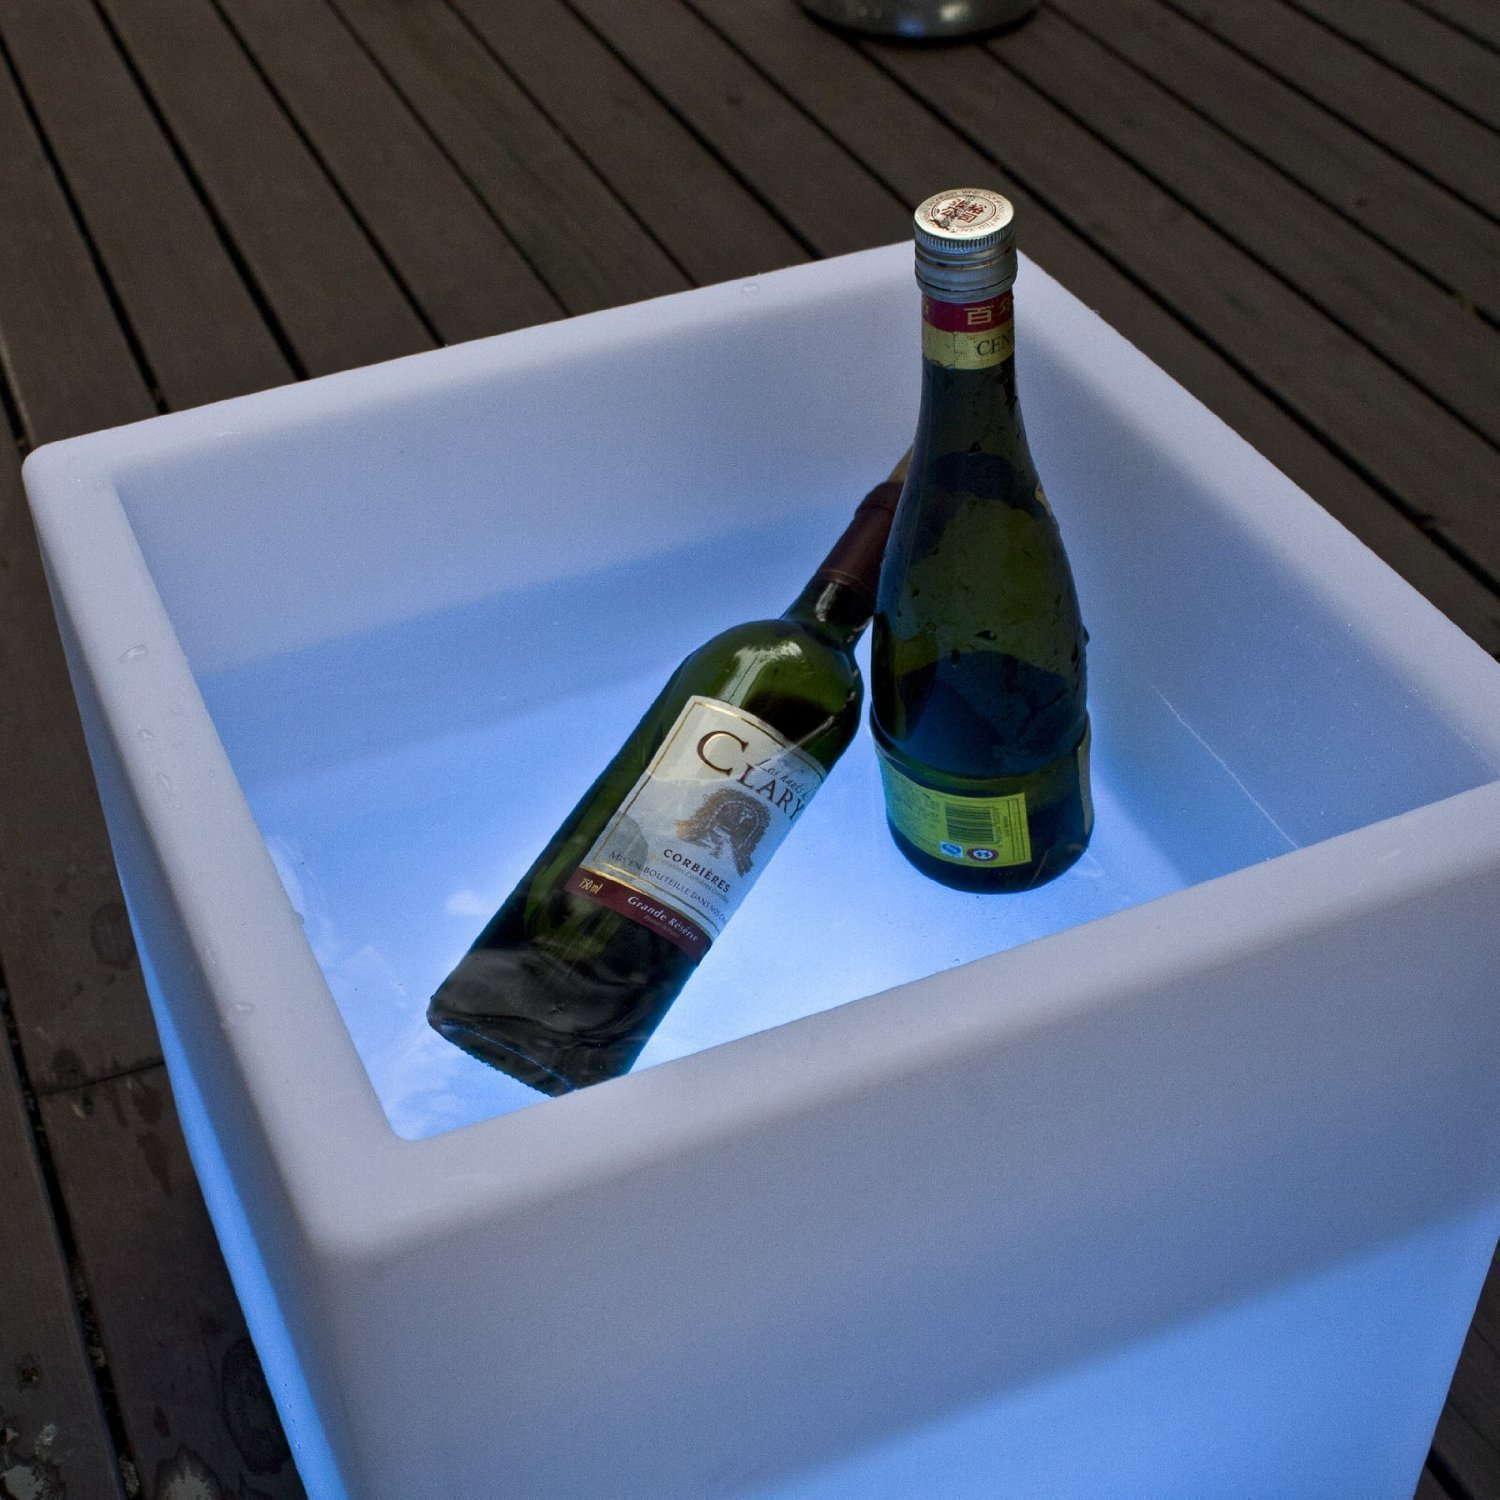 Mr.Go Outdoor/Indoor Rechargeable LED Light SEMI-STORAGE CUBE 16'', Cordless with Remote Control RGB Color Changing Glowing Furniture Cabinet Container End Table Ice Bucket Flower Pot Planter by Mr.Go (Image #8)